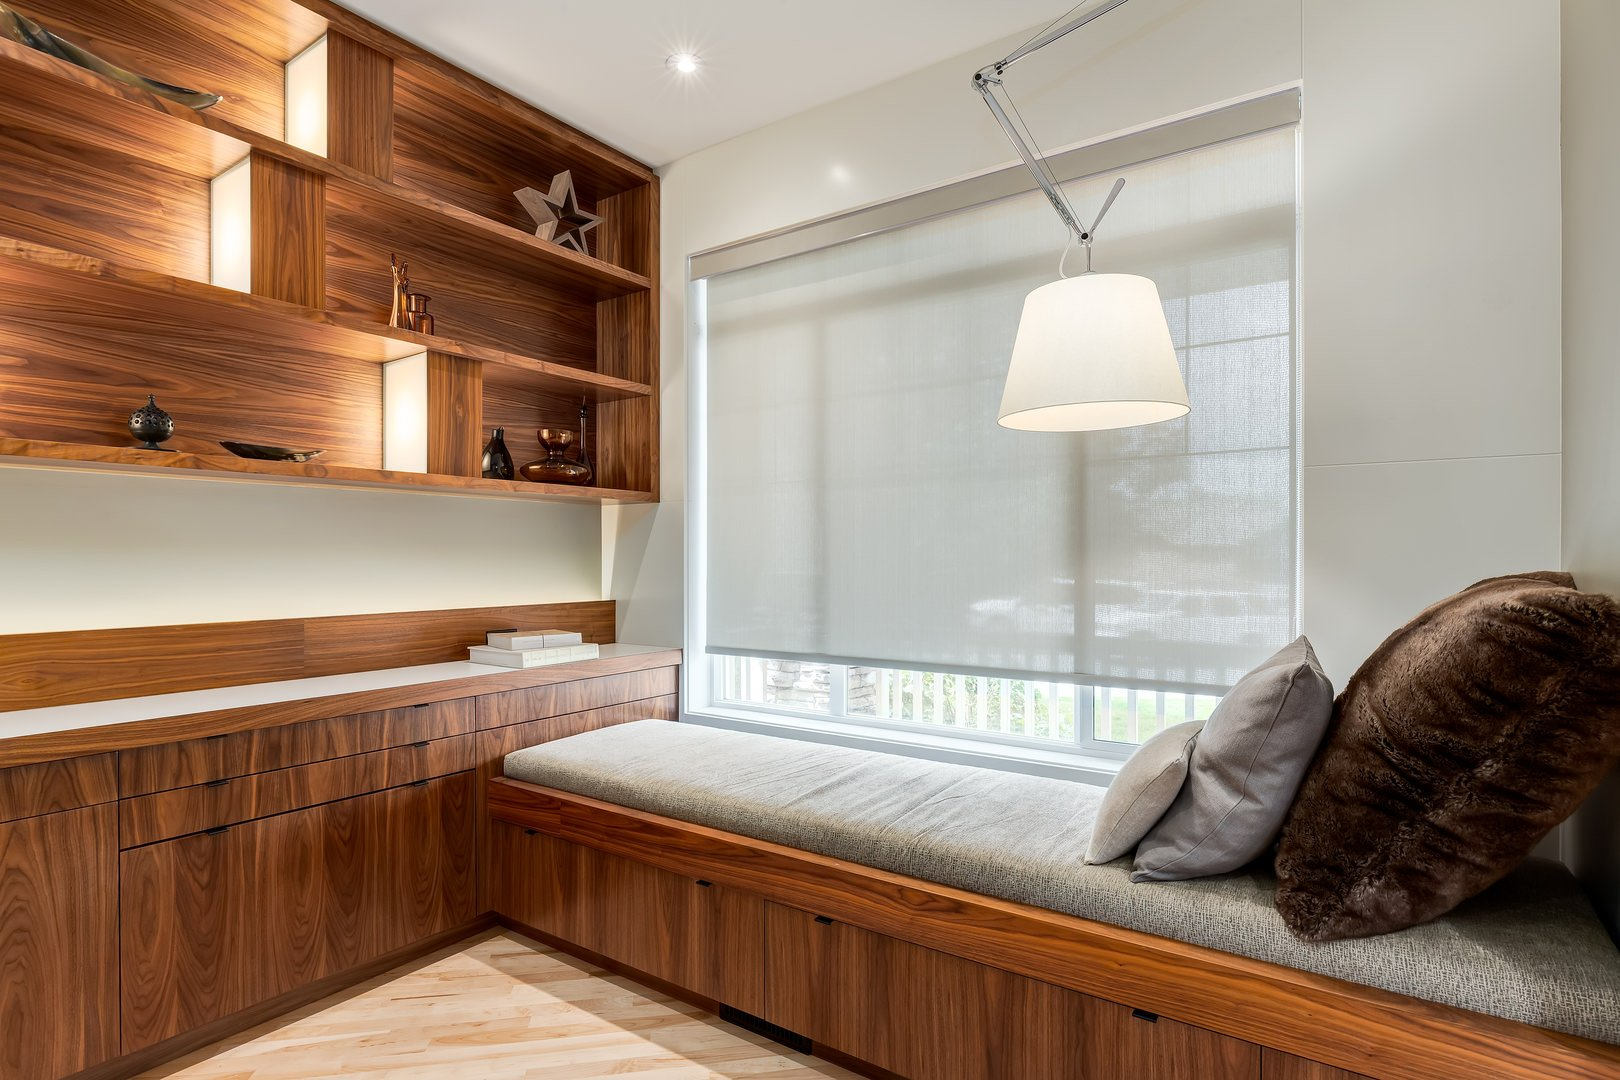 The house also has a separate study so you don't have to worry about converting a spare room into one.